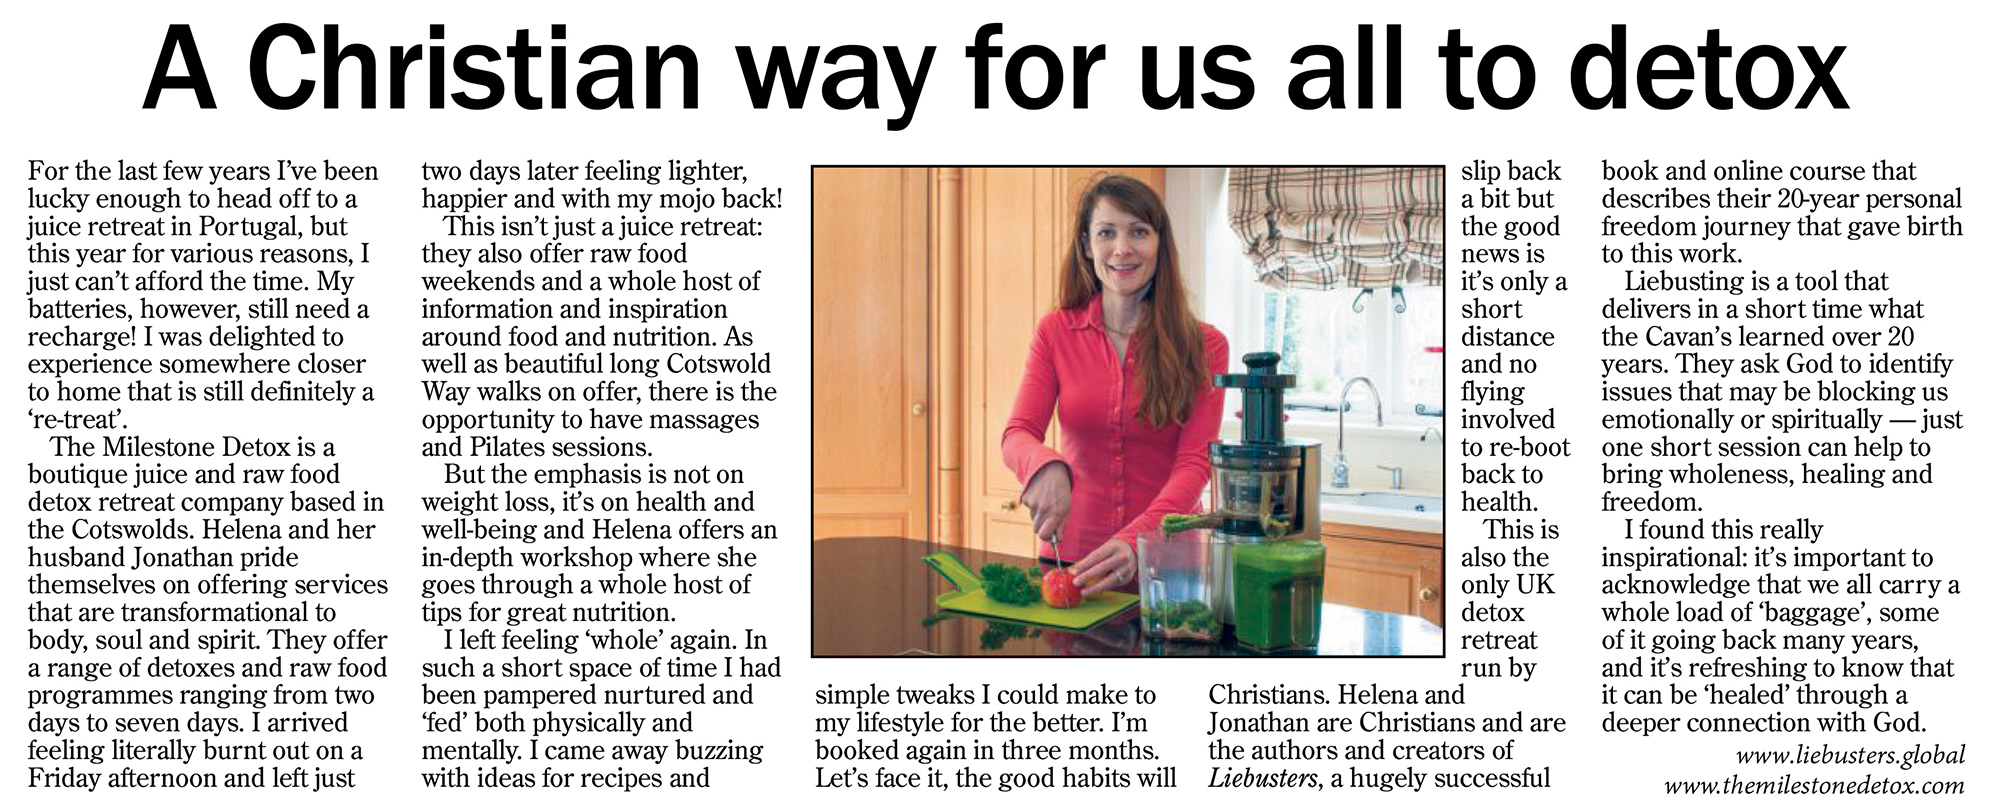 The Milestone Detox Mail On Sunday Juice Detox Raw Food Cotswold Boutique Spa